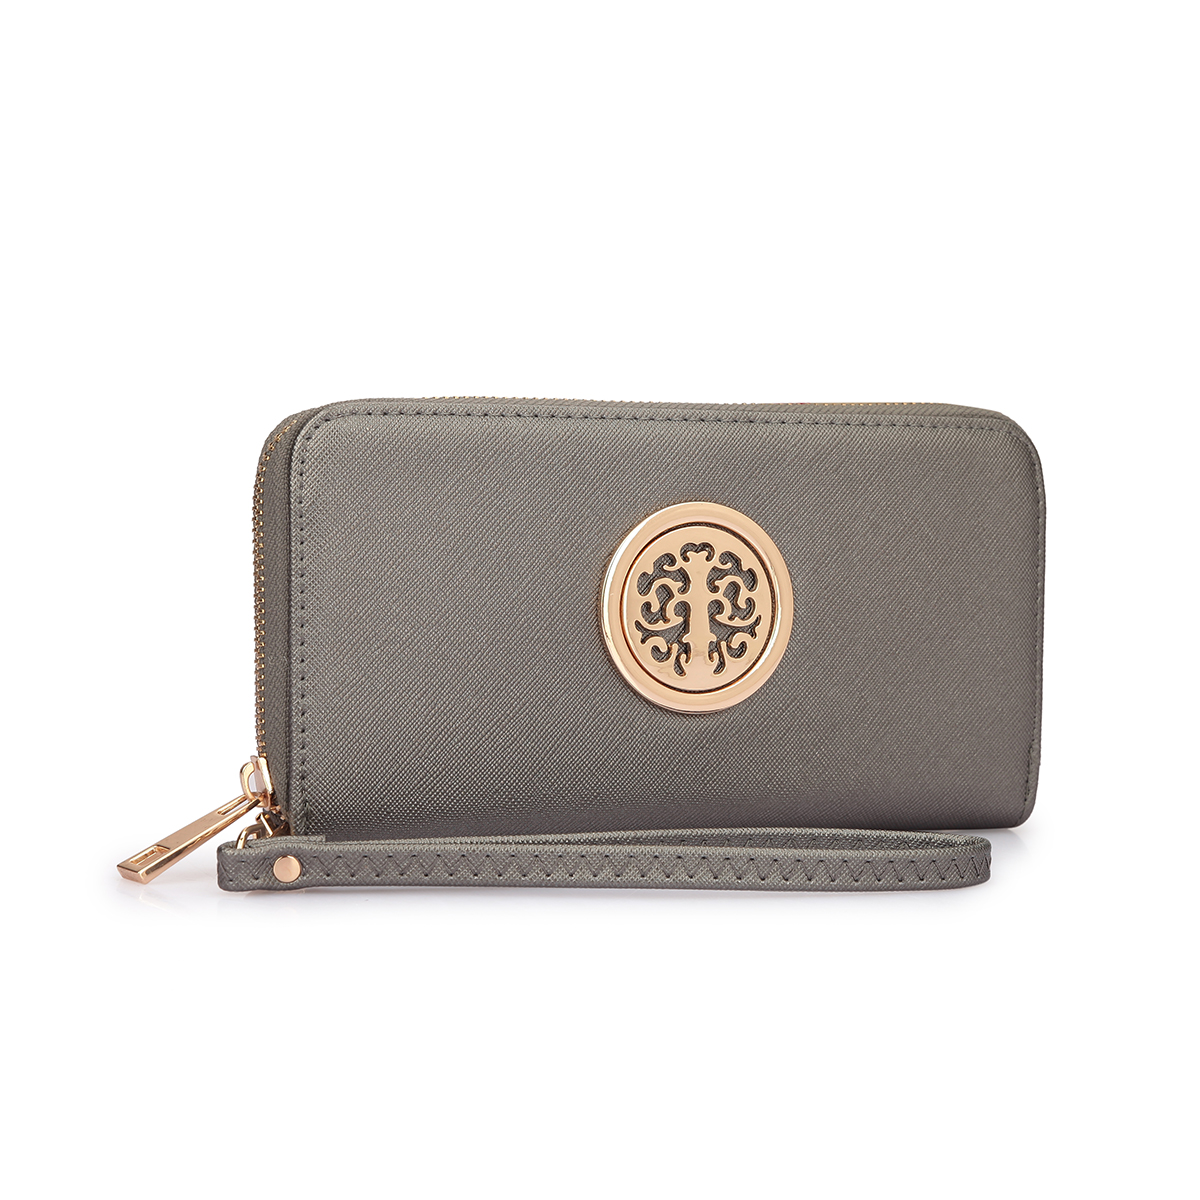 Zip Around Emblem Wallet